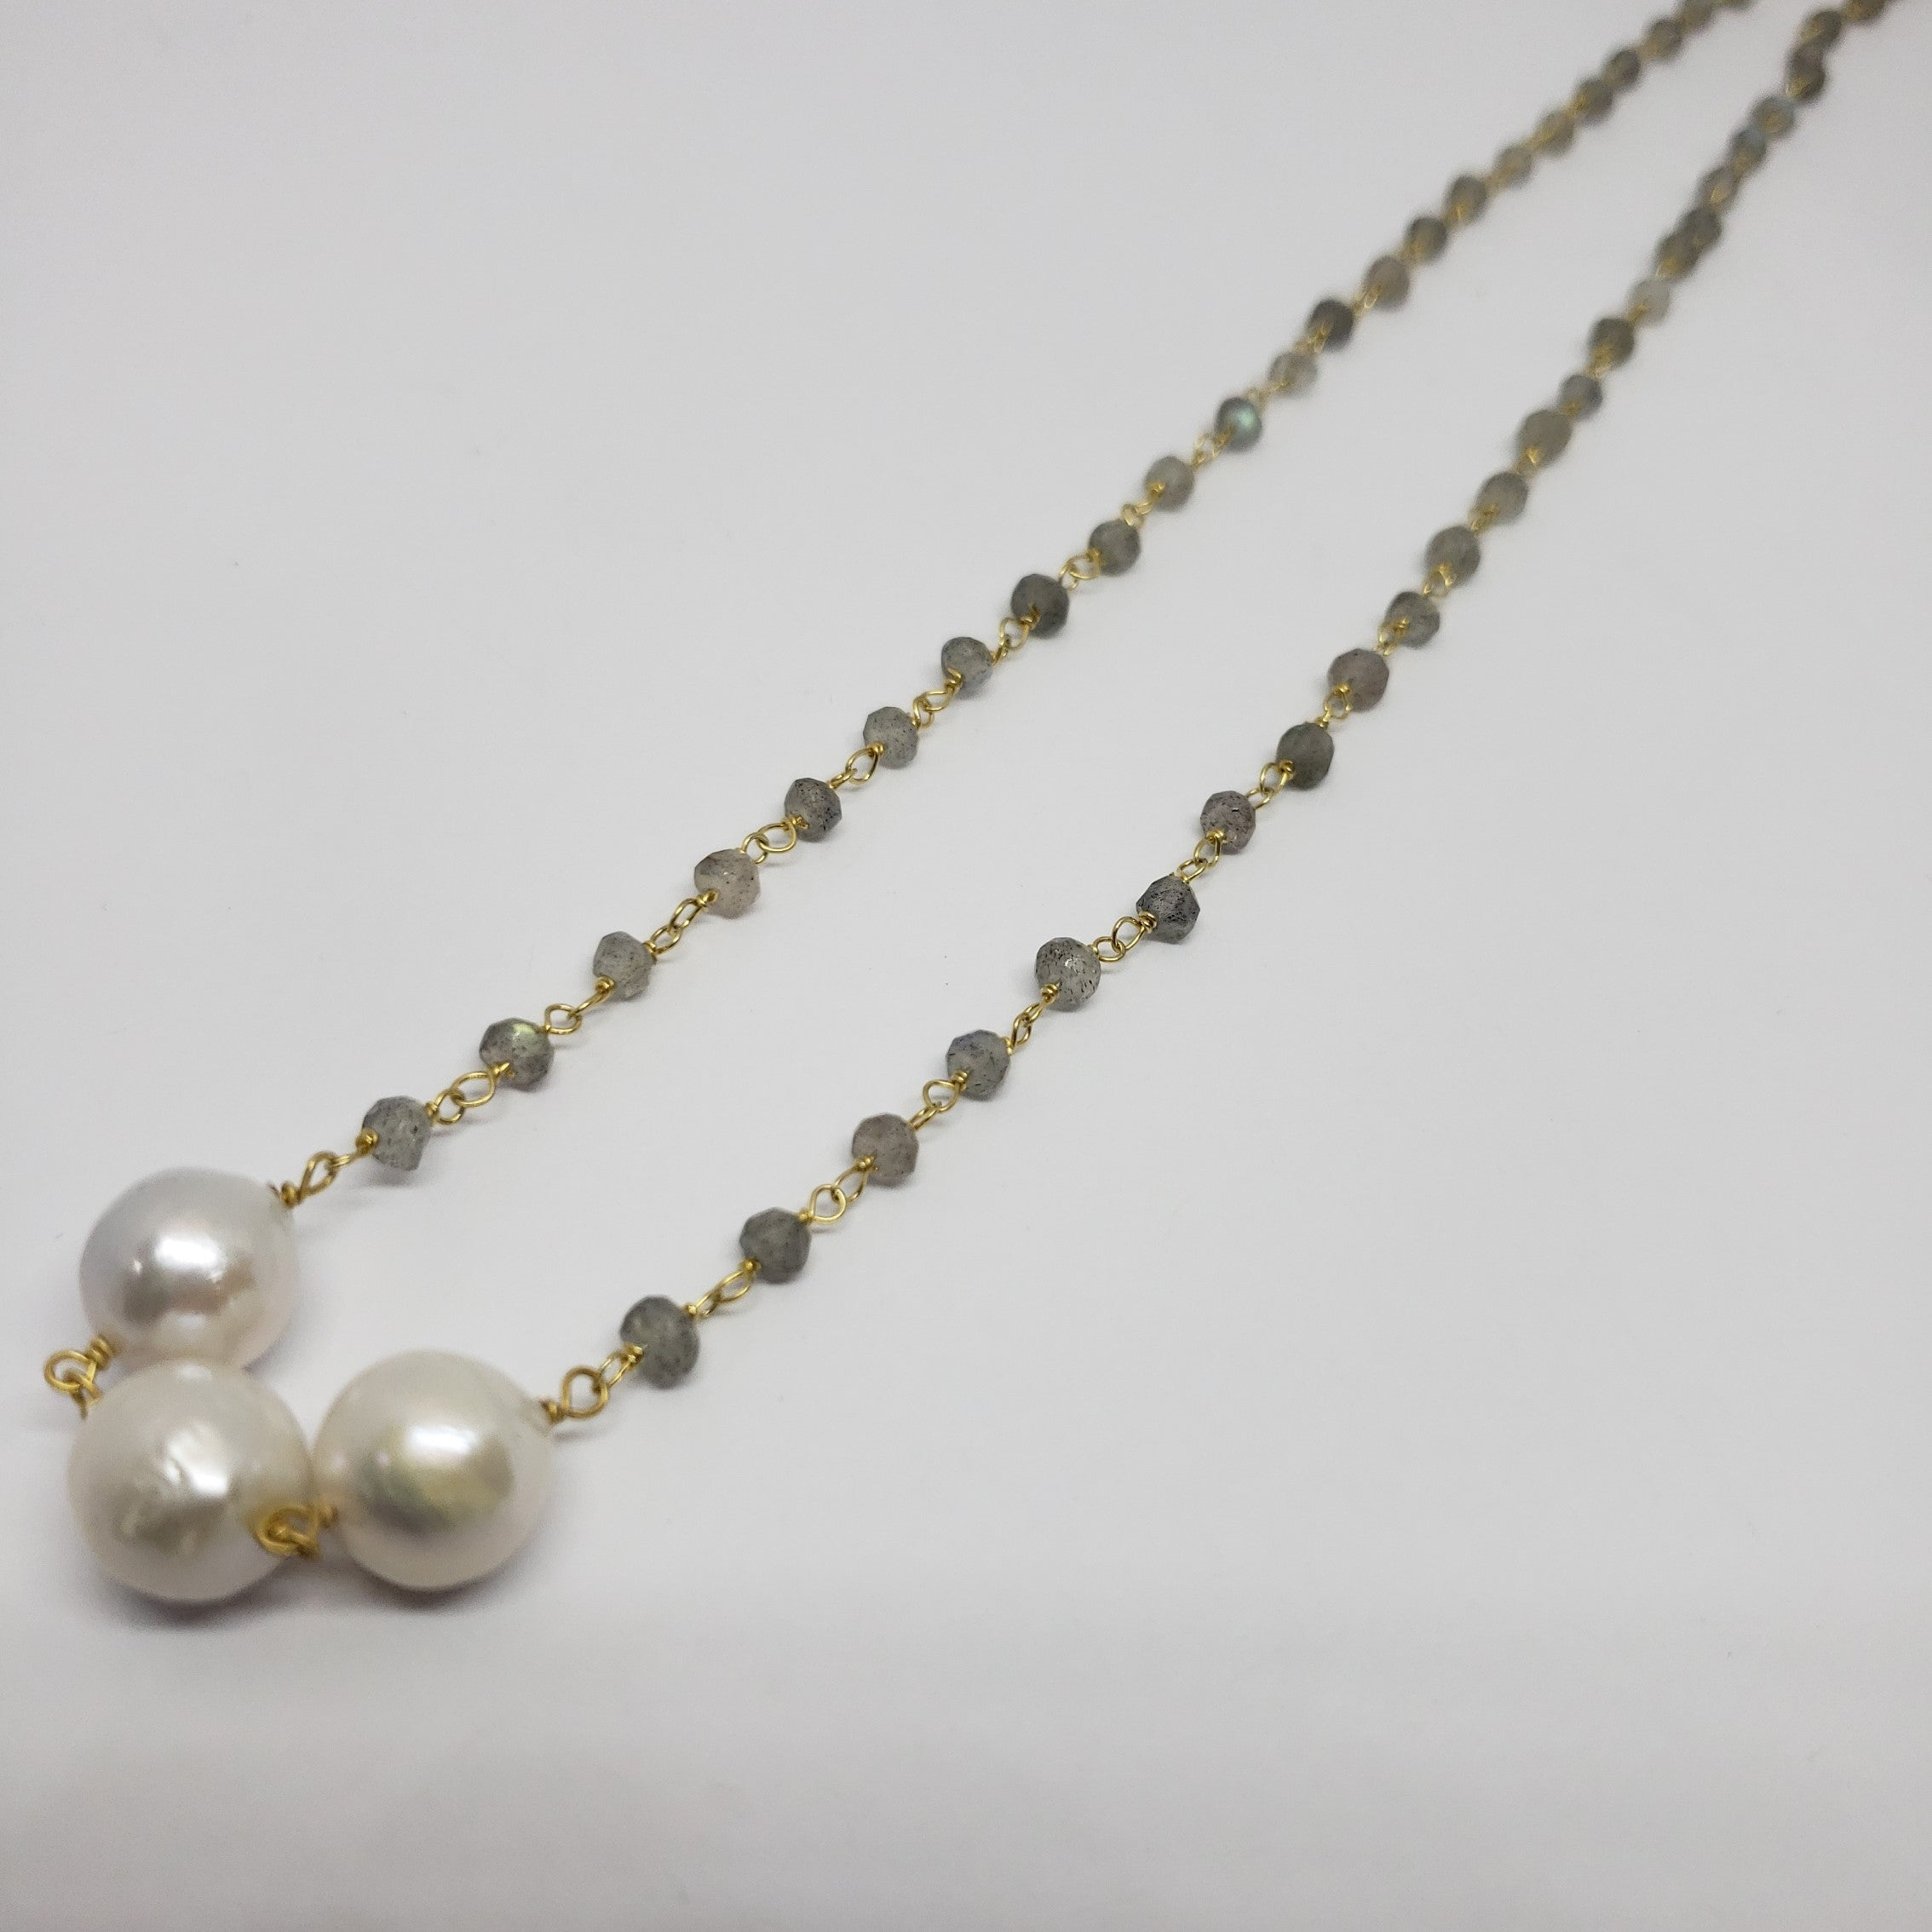 Sabrina Trilogy Station Malagasy Labradorite, Freshwater Pearl Necklace in 14K YG Over (18 in) TGW 25.37 cts. - Houzz of DVA Boutique